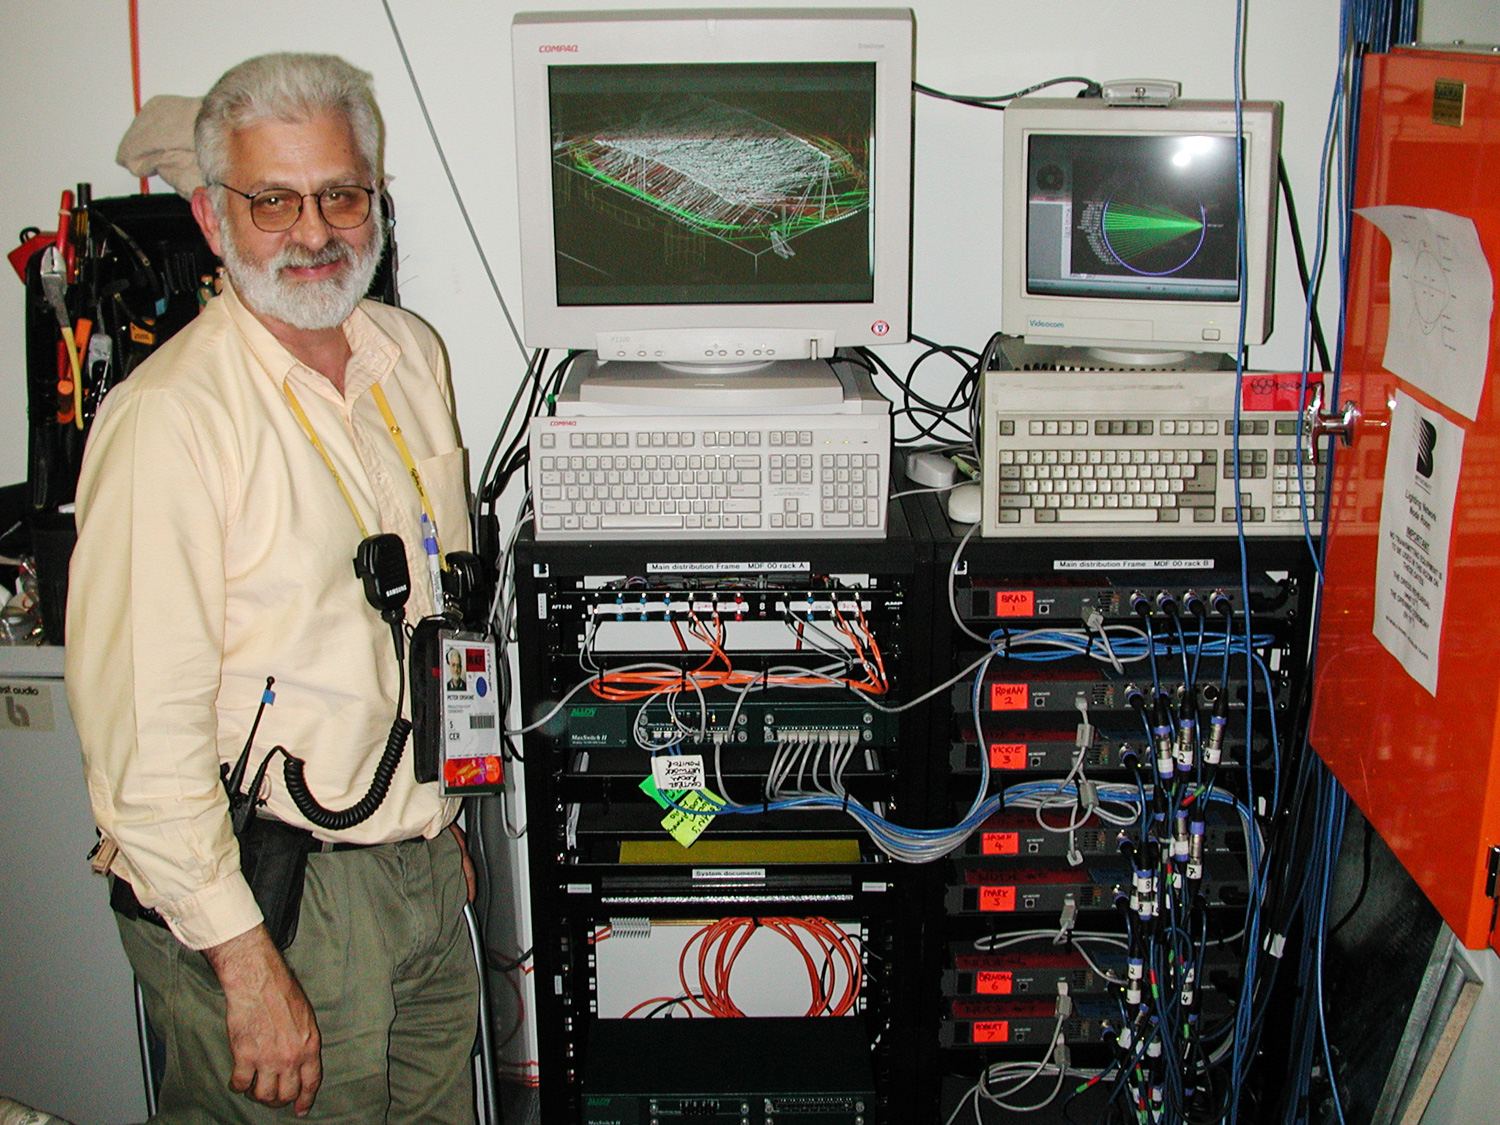 Pete standing next to the lighting fiber distribution system.